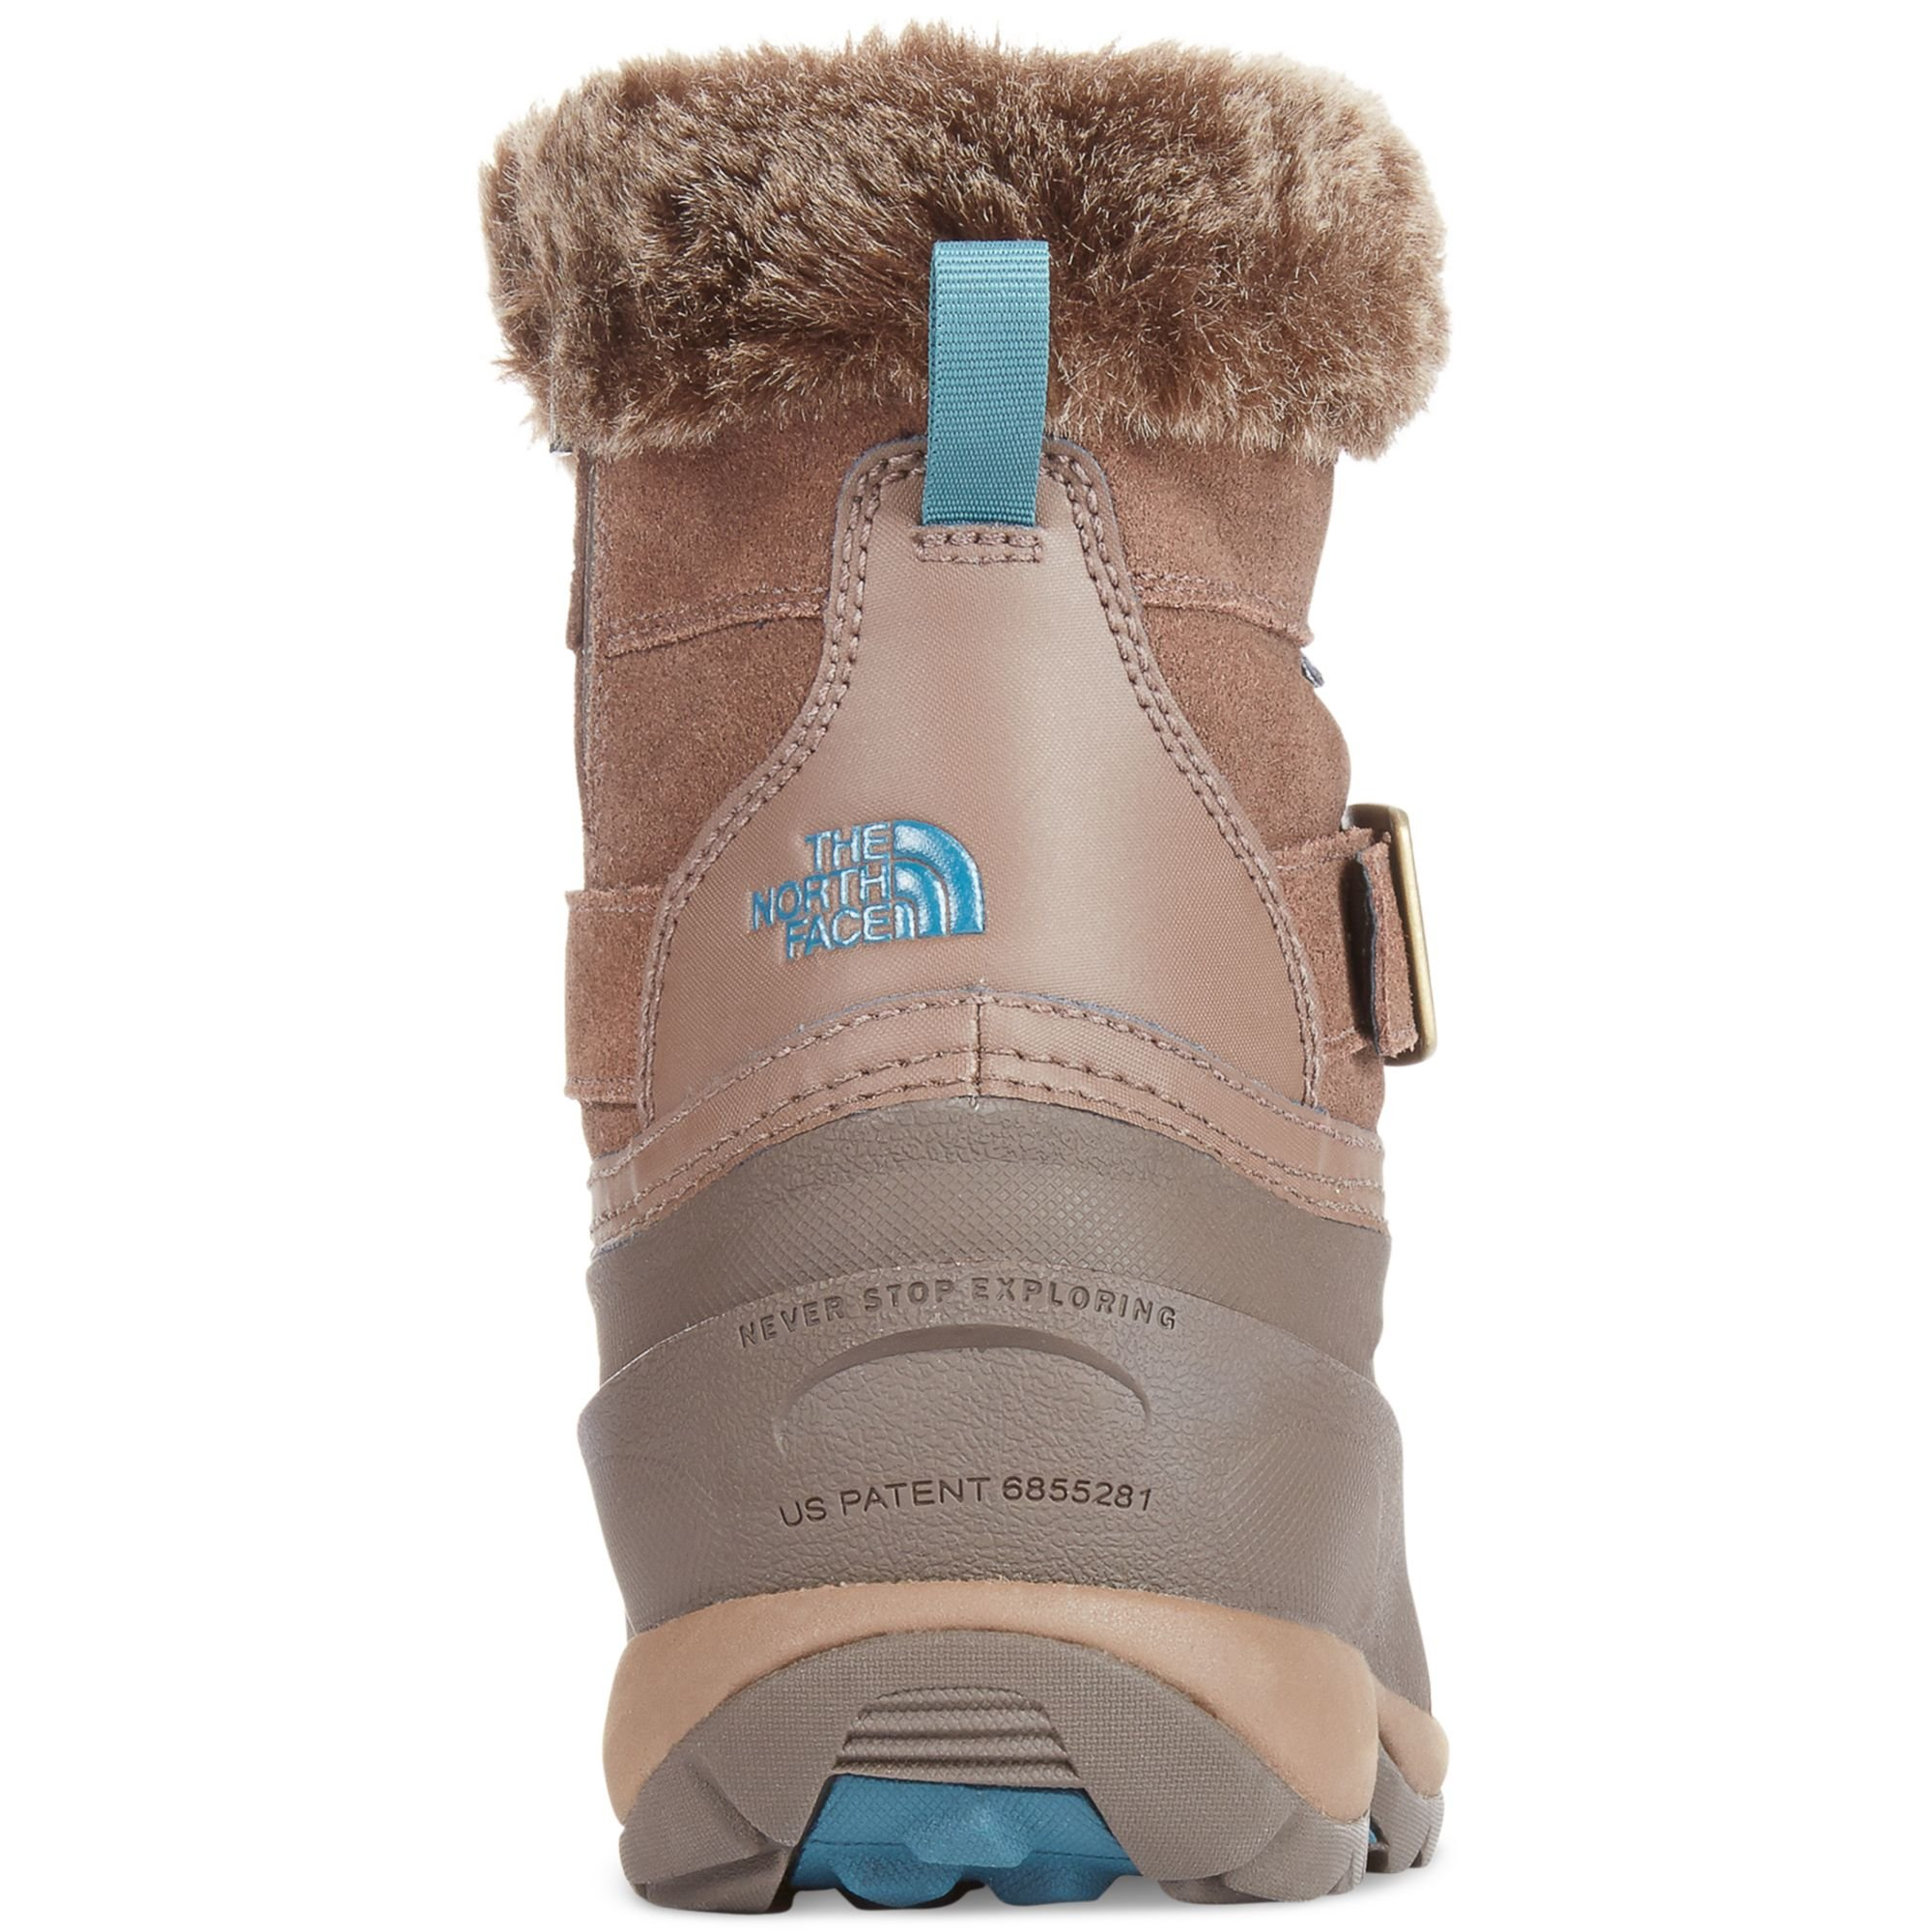 4bba2b55e The North Face Brown Womens Chilkat Iii Pull-on Boots